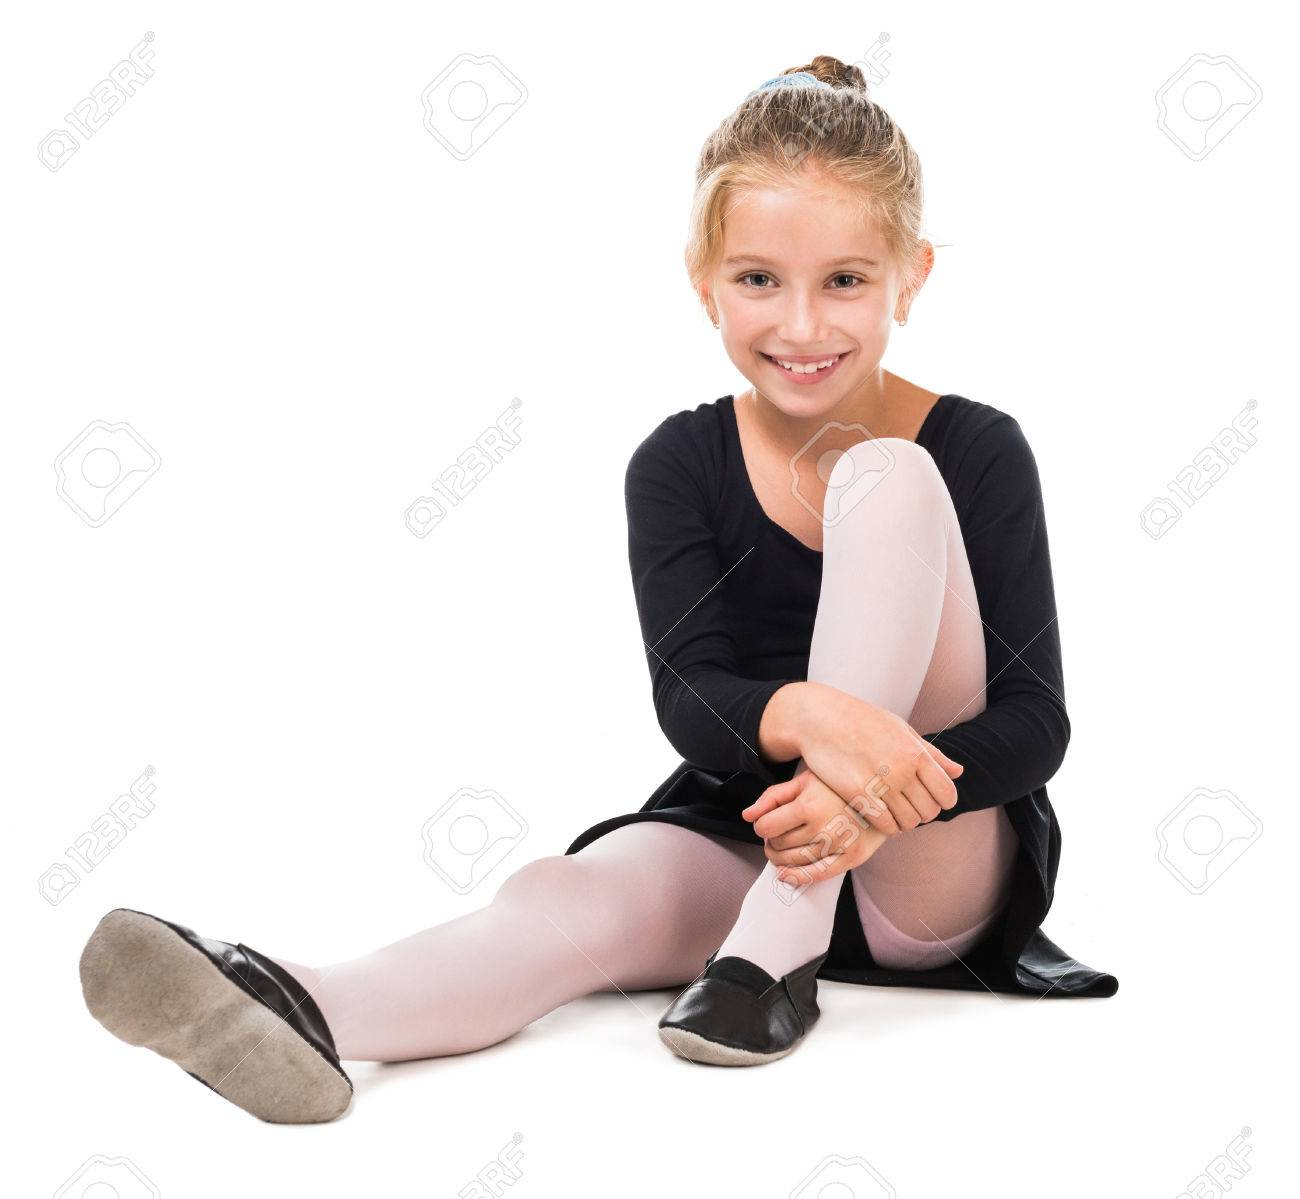 smiling little gymnast on the floor isolated on white background - 44711613